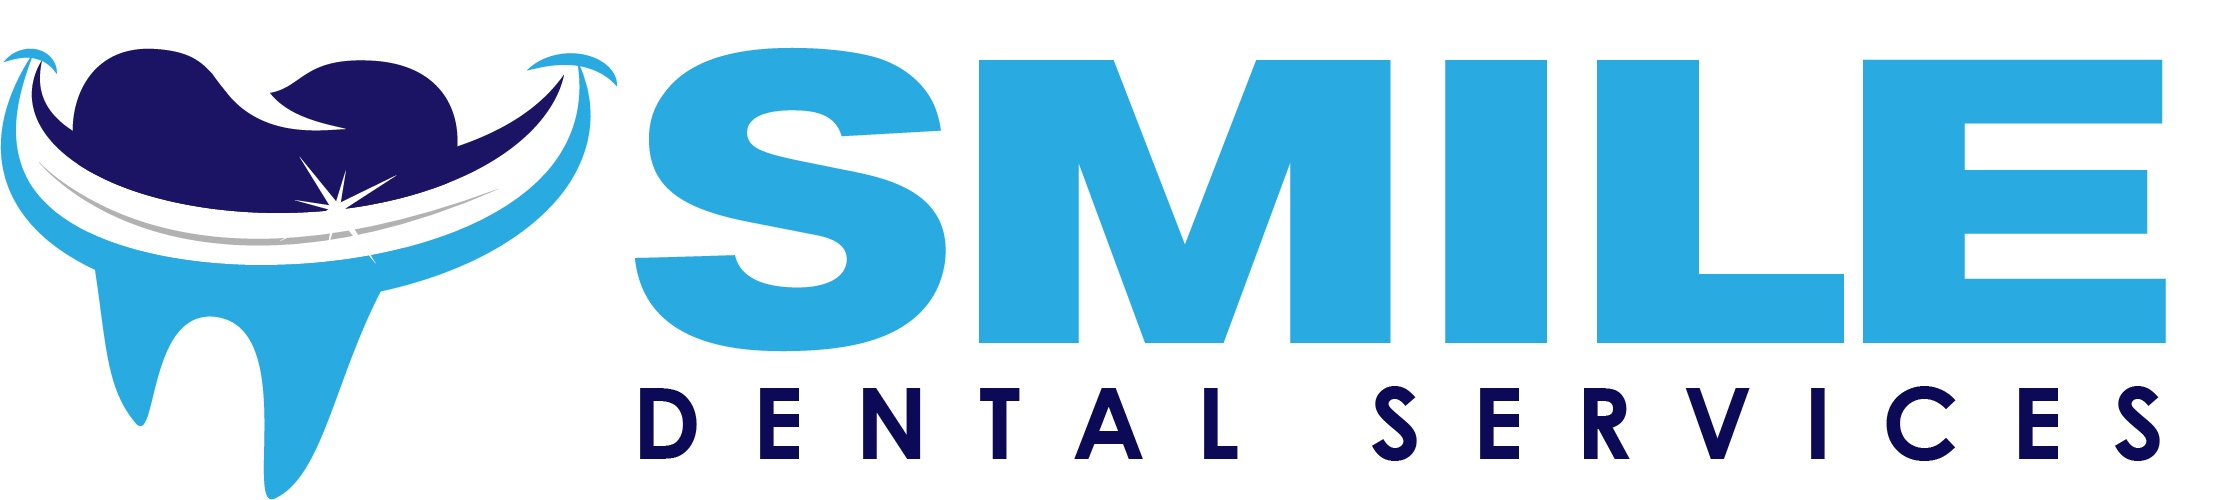 tab32 Announces New Client: Smile Dental Services Inc. (Group Practice)